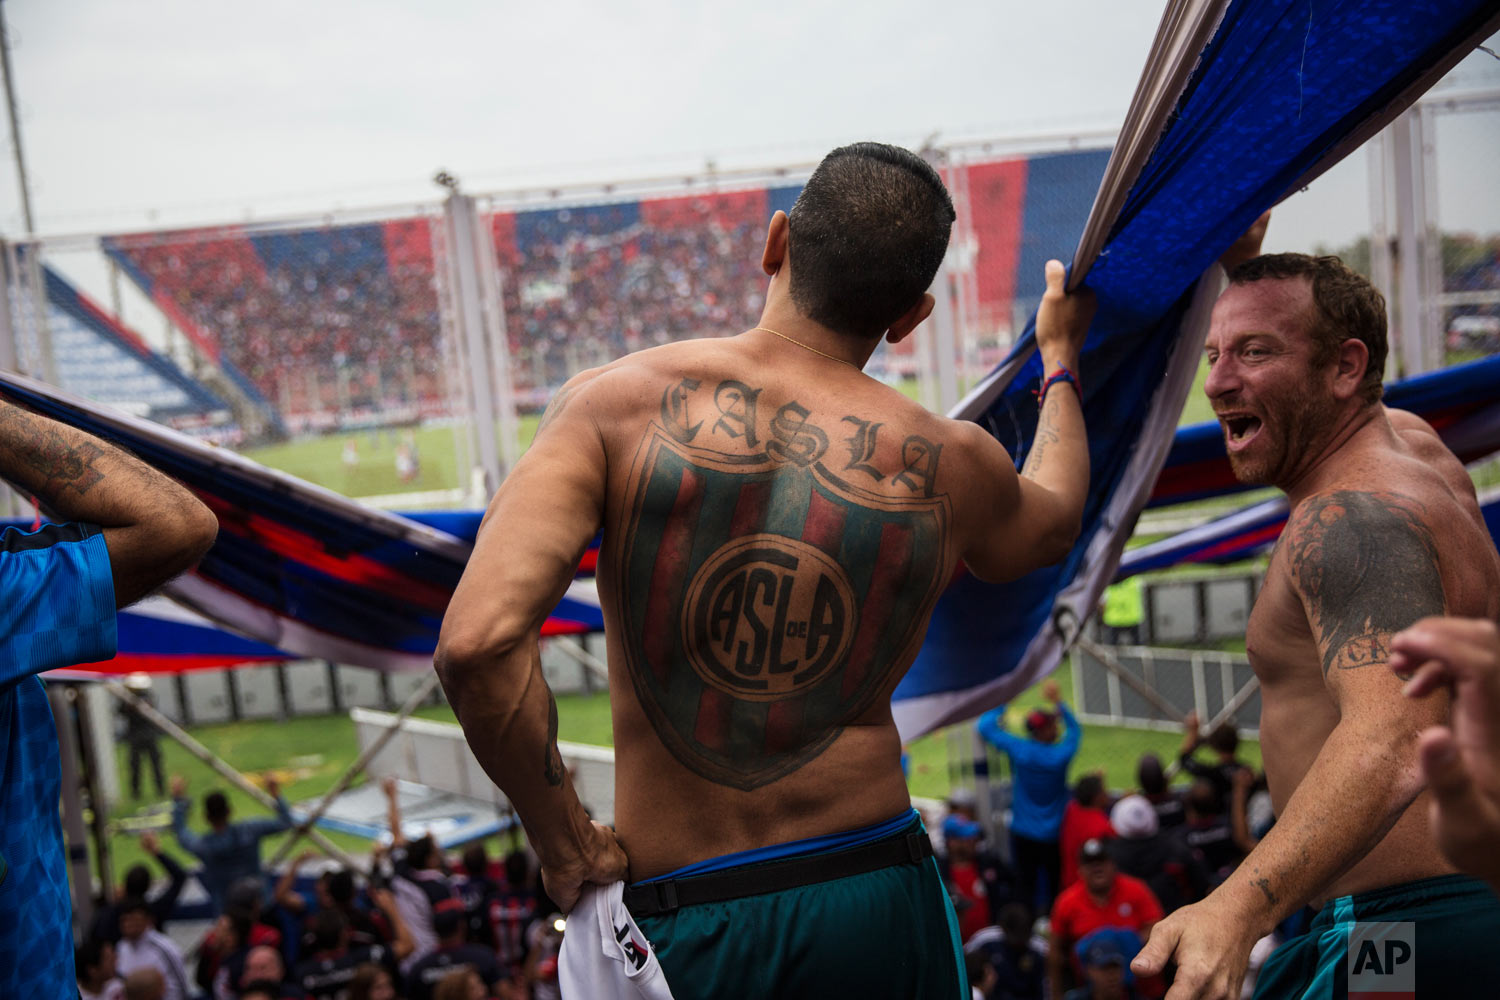 In this April 8, 2018 photo, San Lorenzo soccer fans who are part of the team's most militant fan base sing and dance from the grandstand during a match against Godoy Cruz in Buenos Aires, Argentina. During the 14 years that San Lorenzo lacked a home base, it played in borrowed stadiums and was often the butt of jokes and object of disdain by its rivals. It was then that the fans became inspired to answer with homemade chants. (AP Photo/Rodrigo Abd)